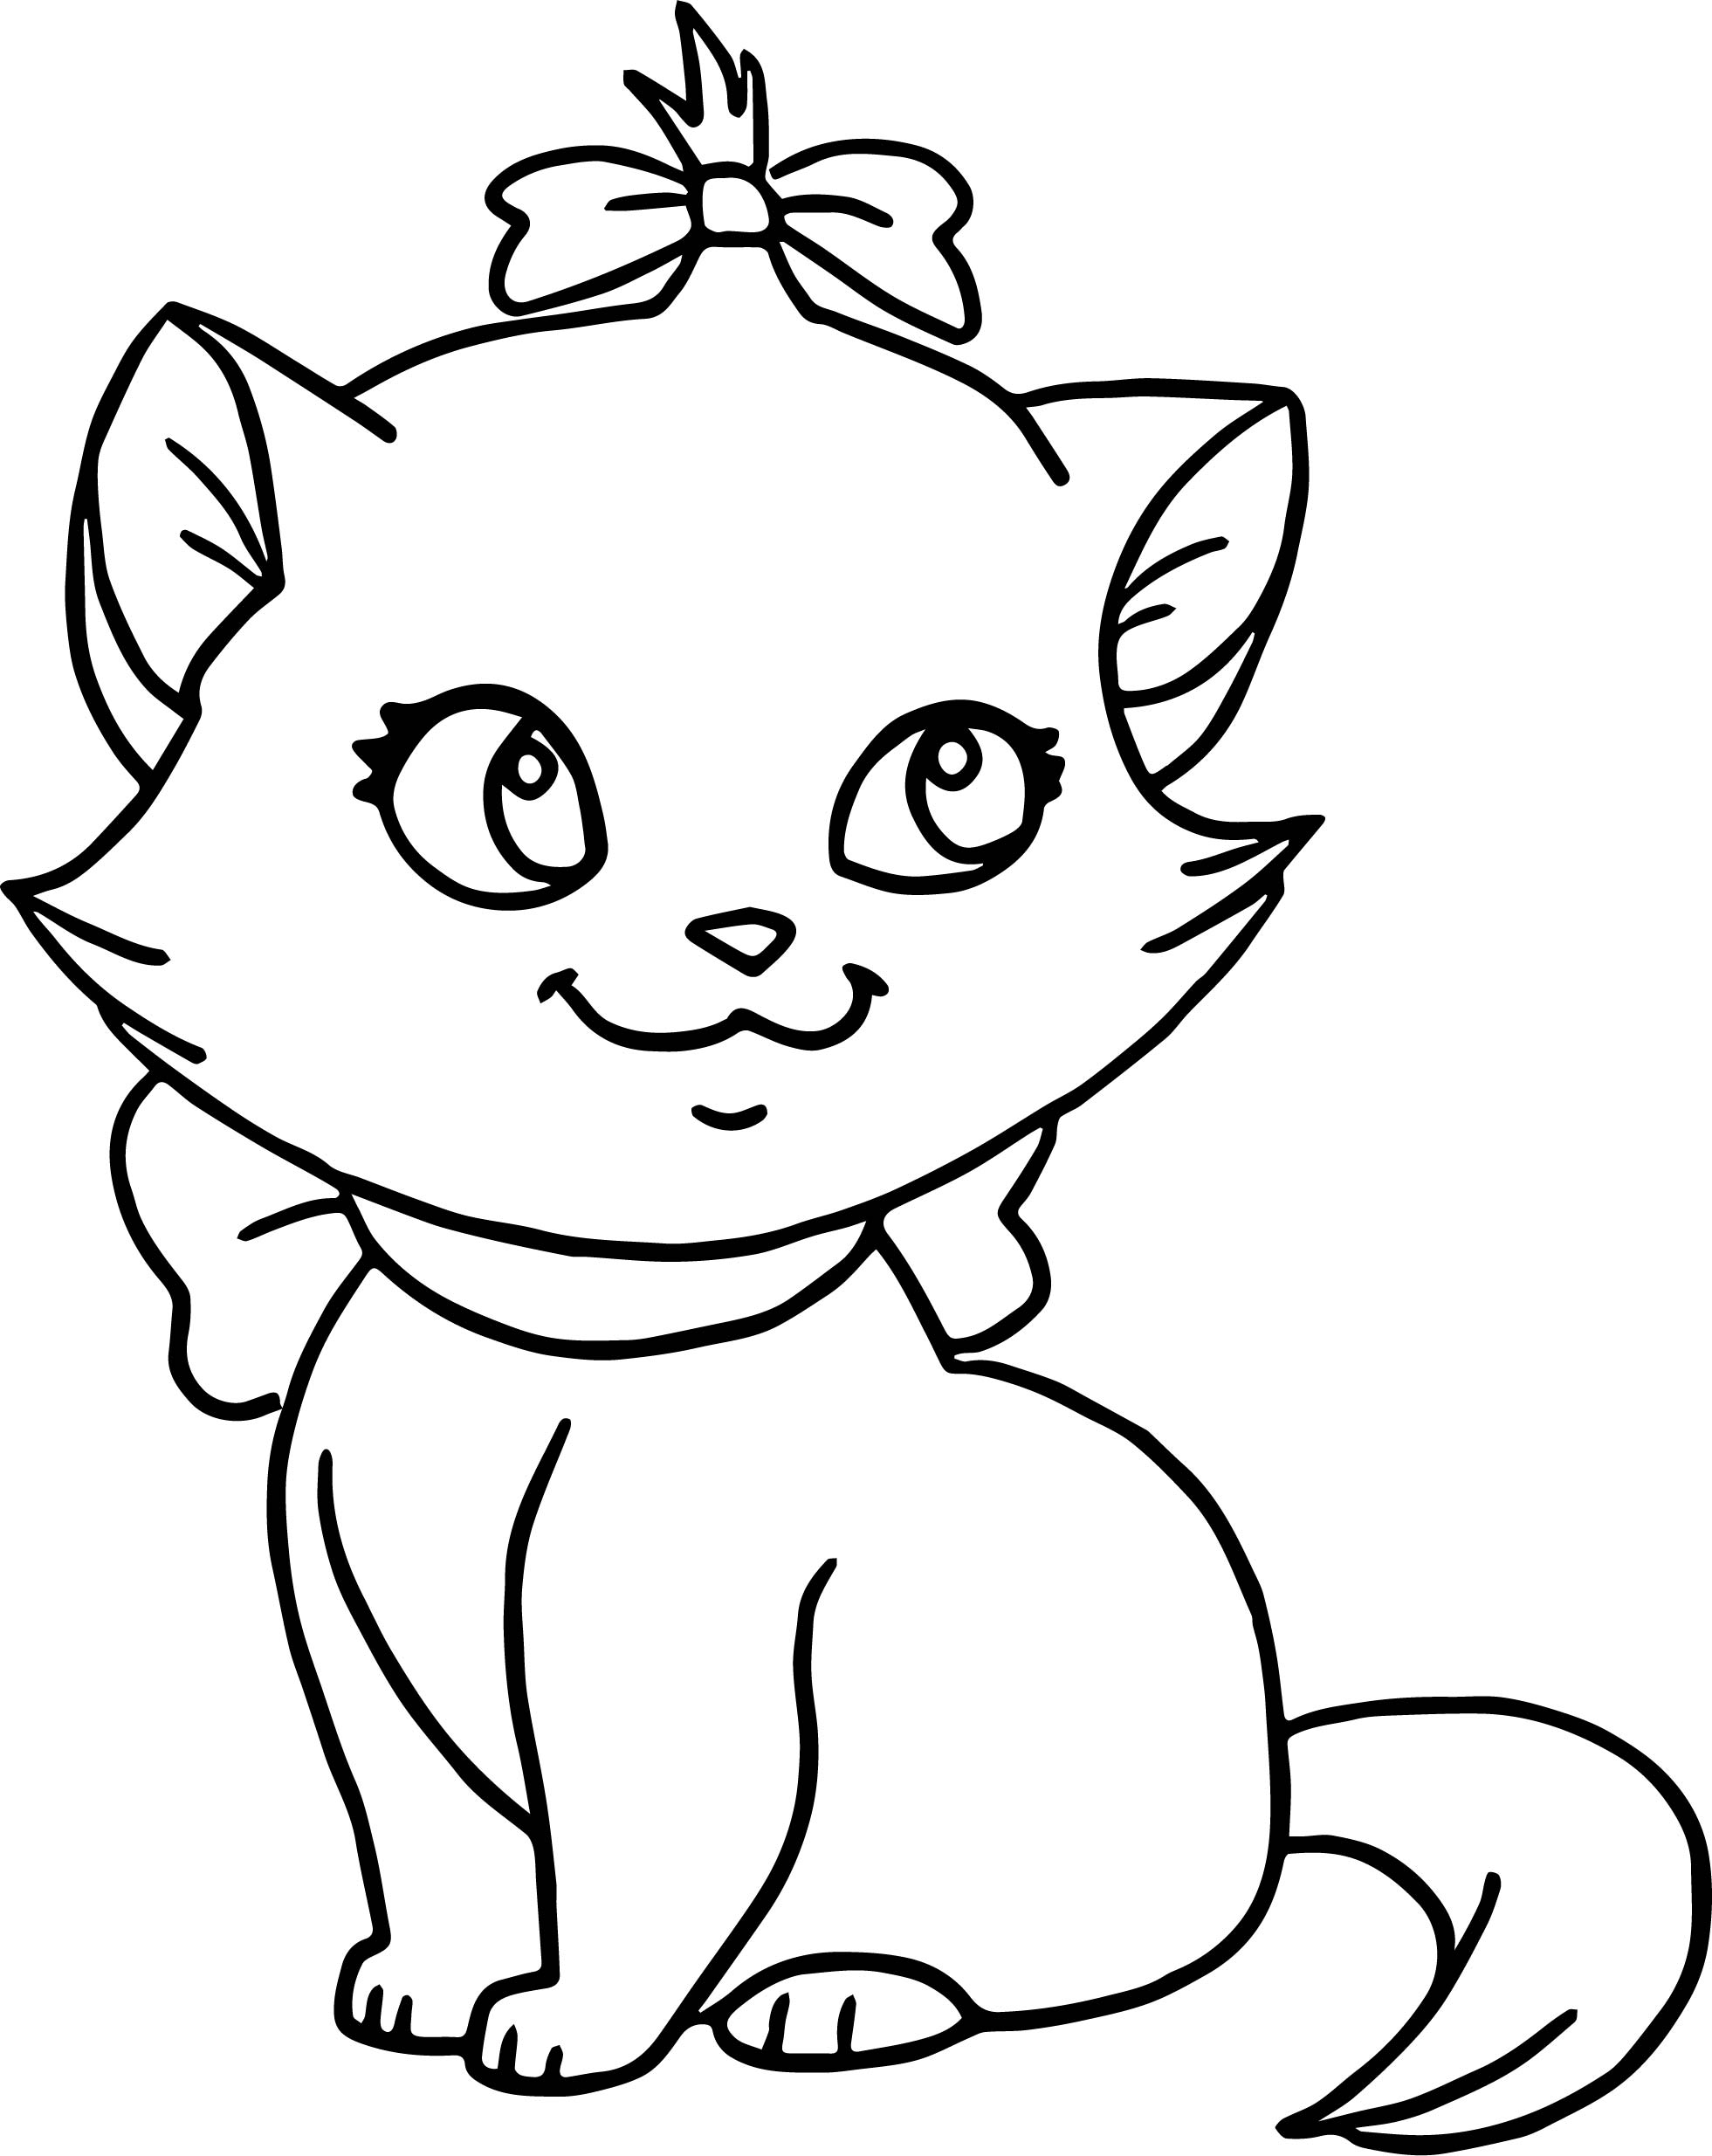 cute cat colouring pages cute kitten coloring pages getcoloringpagescom colouring cute pages cat